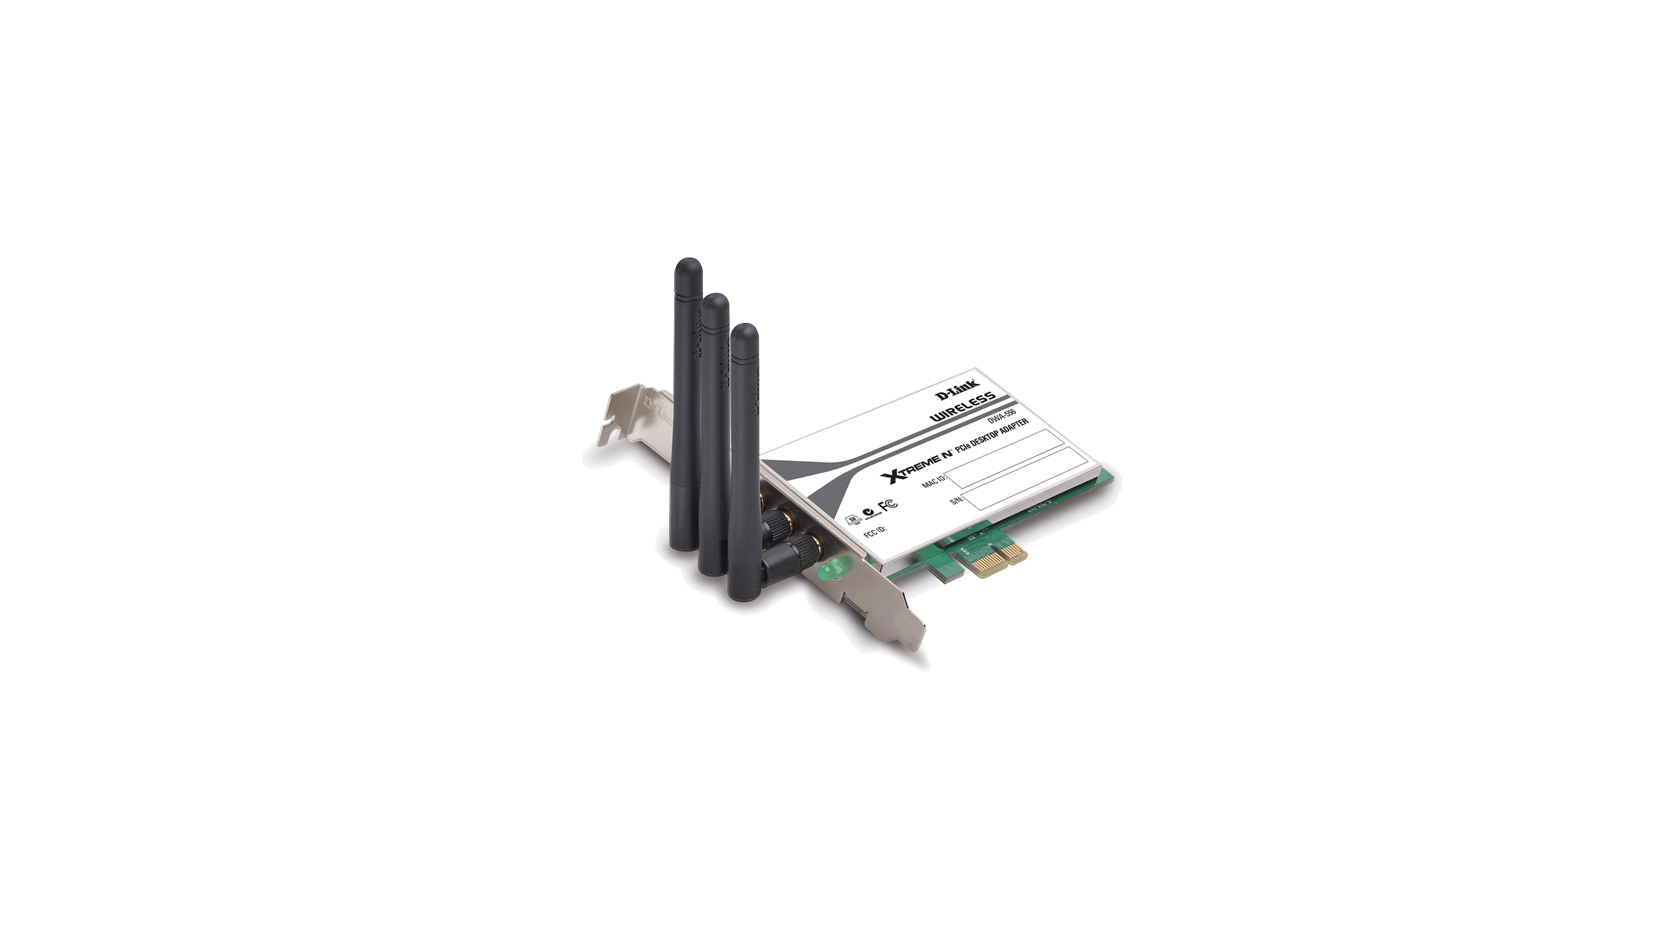 D-Link DWA-556 Wireless Adapter Driver Download